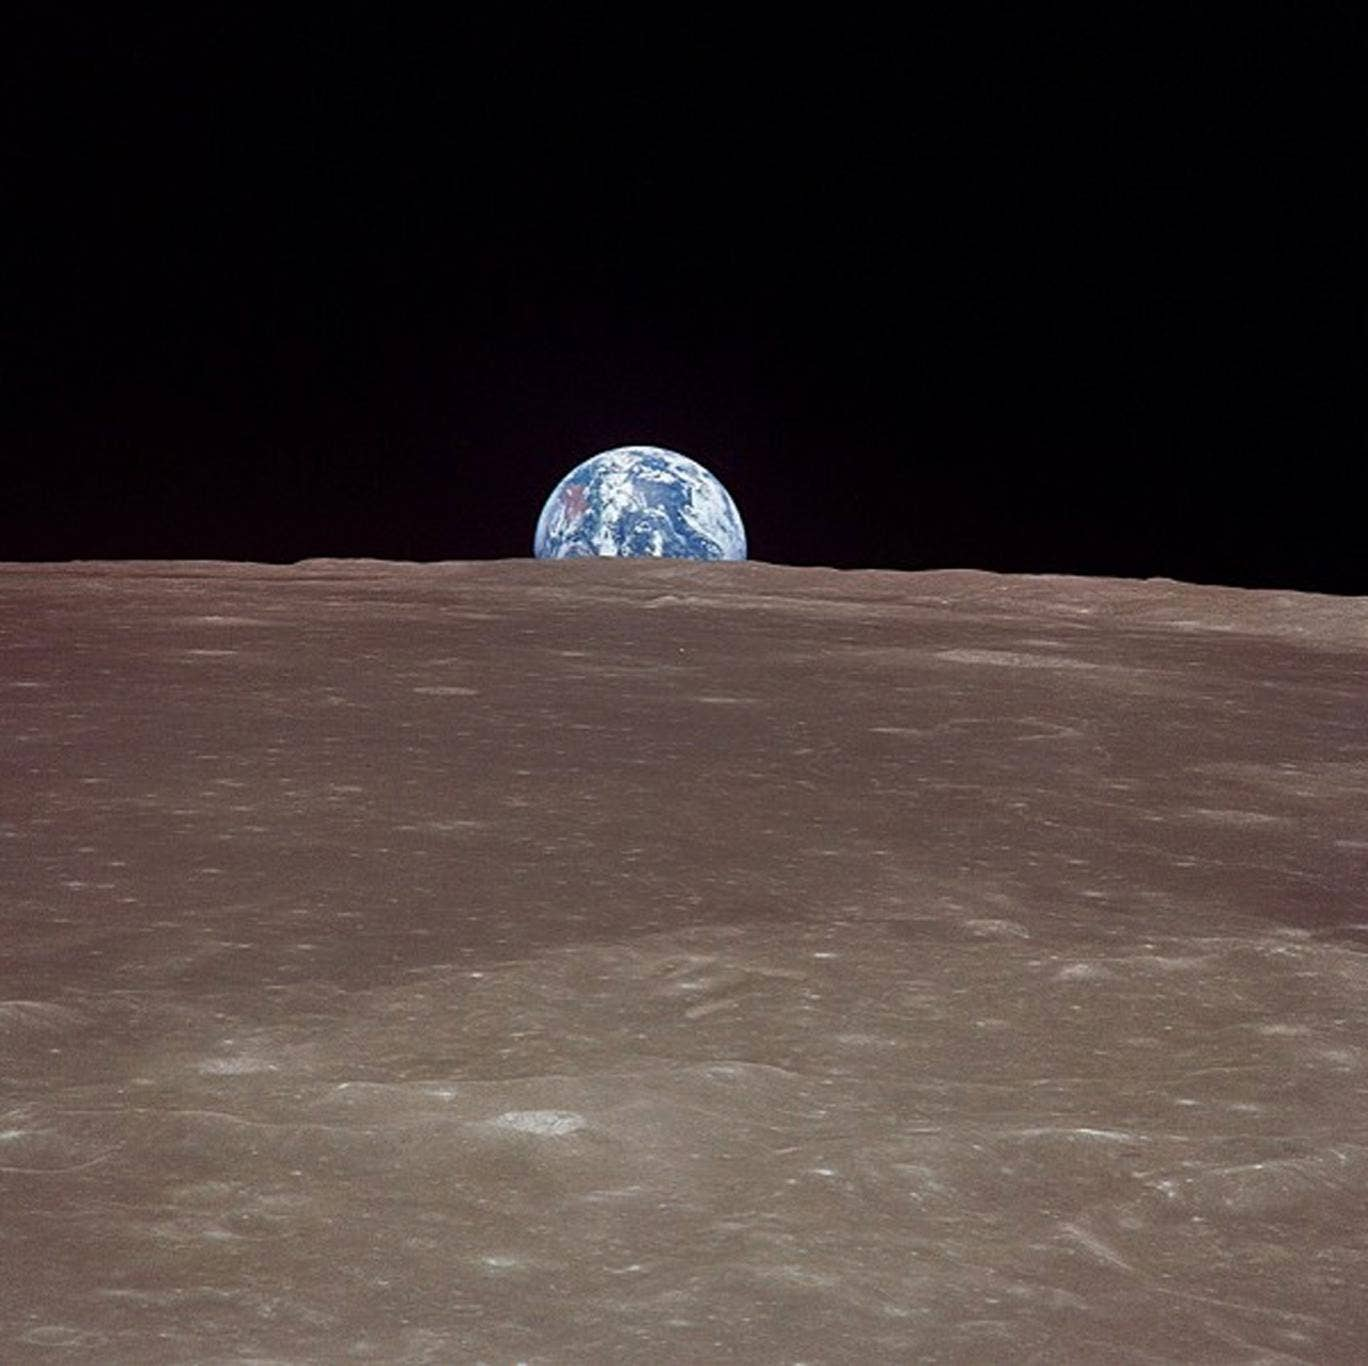 This image taken 20 July 1969 from Apollo 11 shows the Earth rising over the limb of the moon much as the Harvest Moon does from our planetary perspective. Over the stark, scarred surface of the moon, the Earth floats in the void of space, a watery jewel